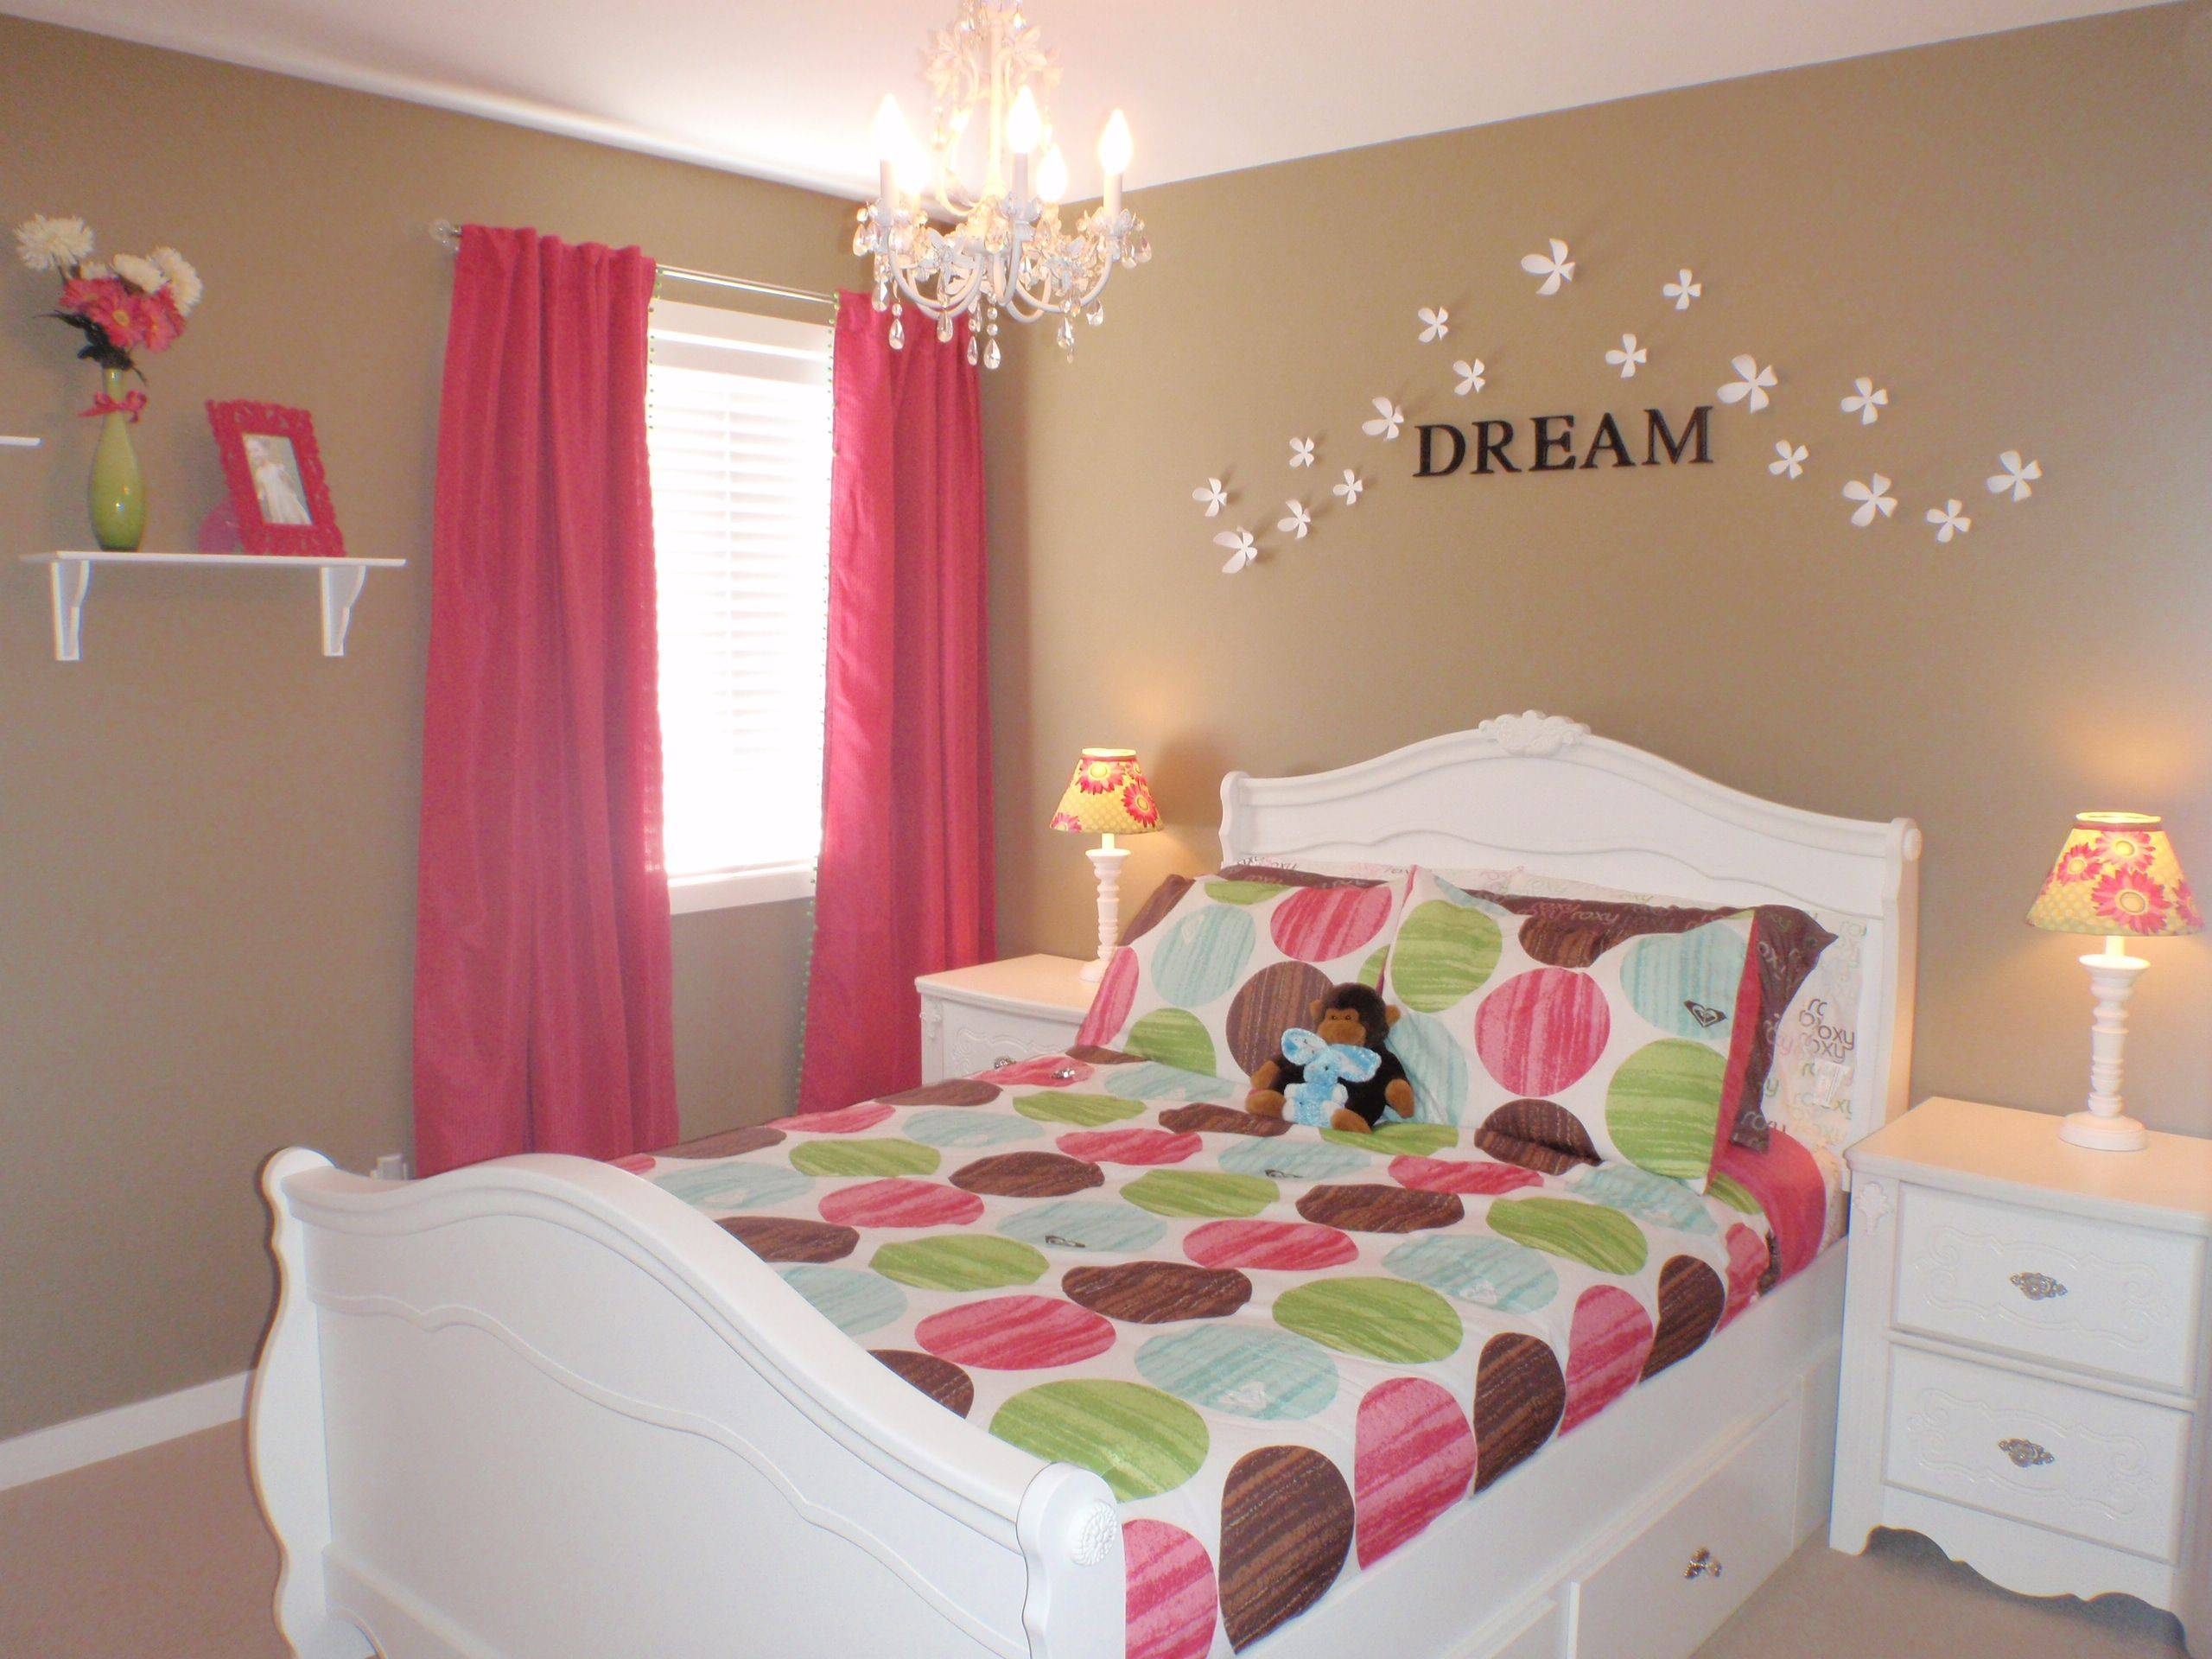 Pink Aesthetic Bedroom Ideas Beautiful Bedroom Ideas Pink and Cream